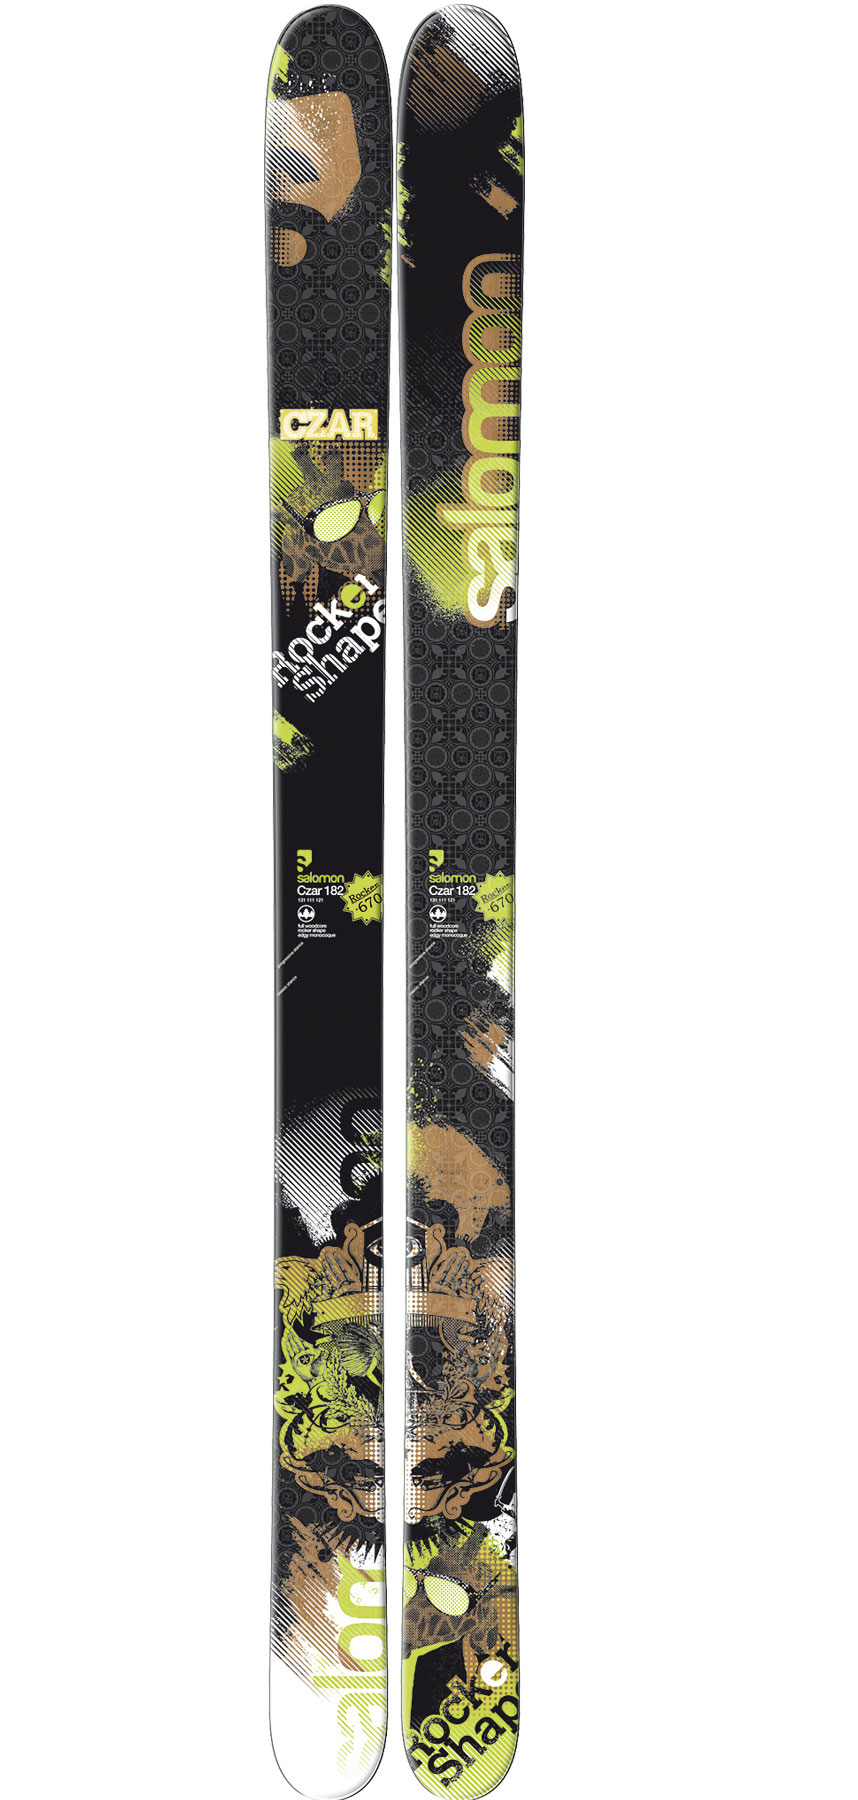 Ski The Salomon Czar ski is Rockered Powder Performance.Key Features of the Salomon Czar Skis: Double Monocoque Edgy Monocoque Full Woodcore Wide edges Total edge reinforcement High twin tip tail Pulse Pad Powder Rocker Sidecut: 131/111/121 (182cm) Radius: 38.3 (166), 40.0 (174), 44.7 (182), 54.9 (190) - $390.95